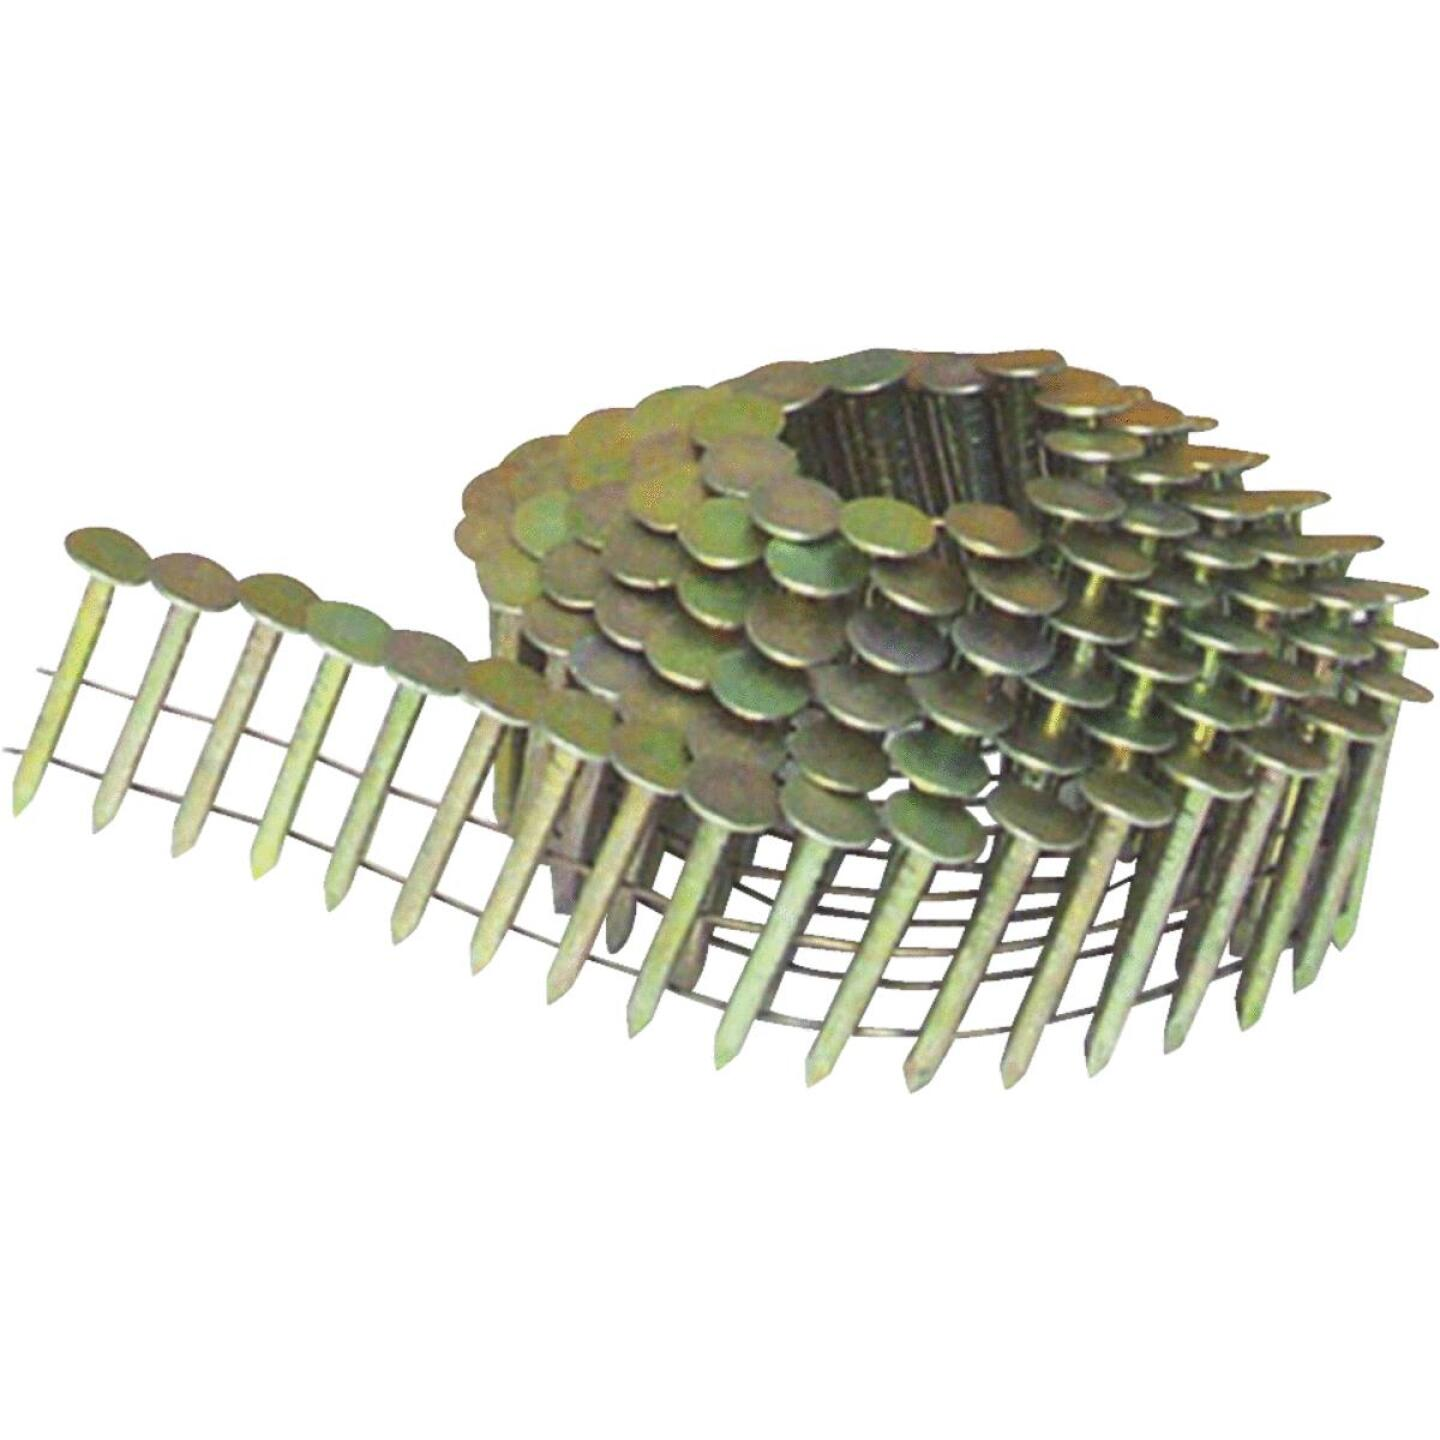 Bostitch 15 Degree Wire Weld Galvanized Coil Roofing Nail, 1-1/2 In. x .120 In. (7200 Ct.) Image 1